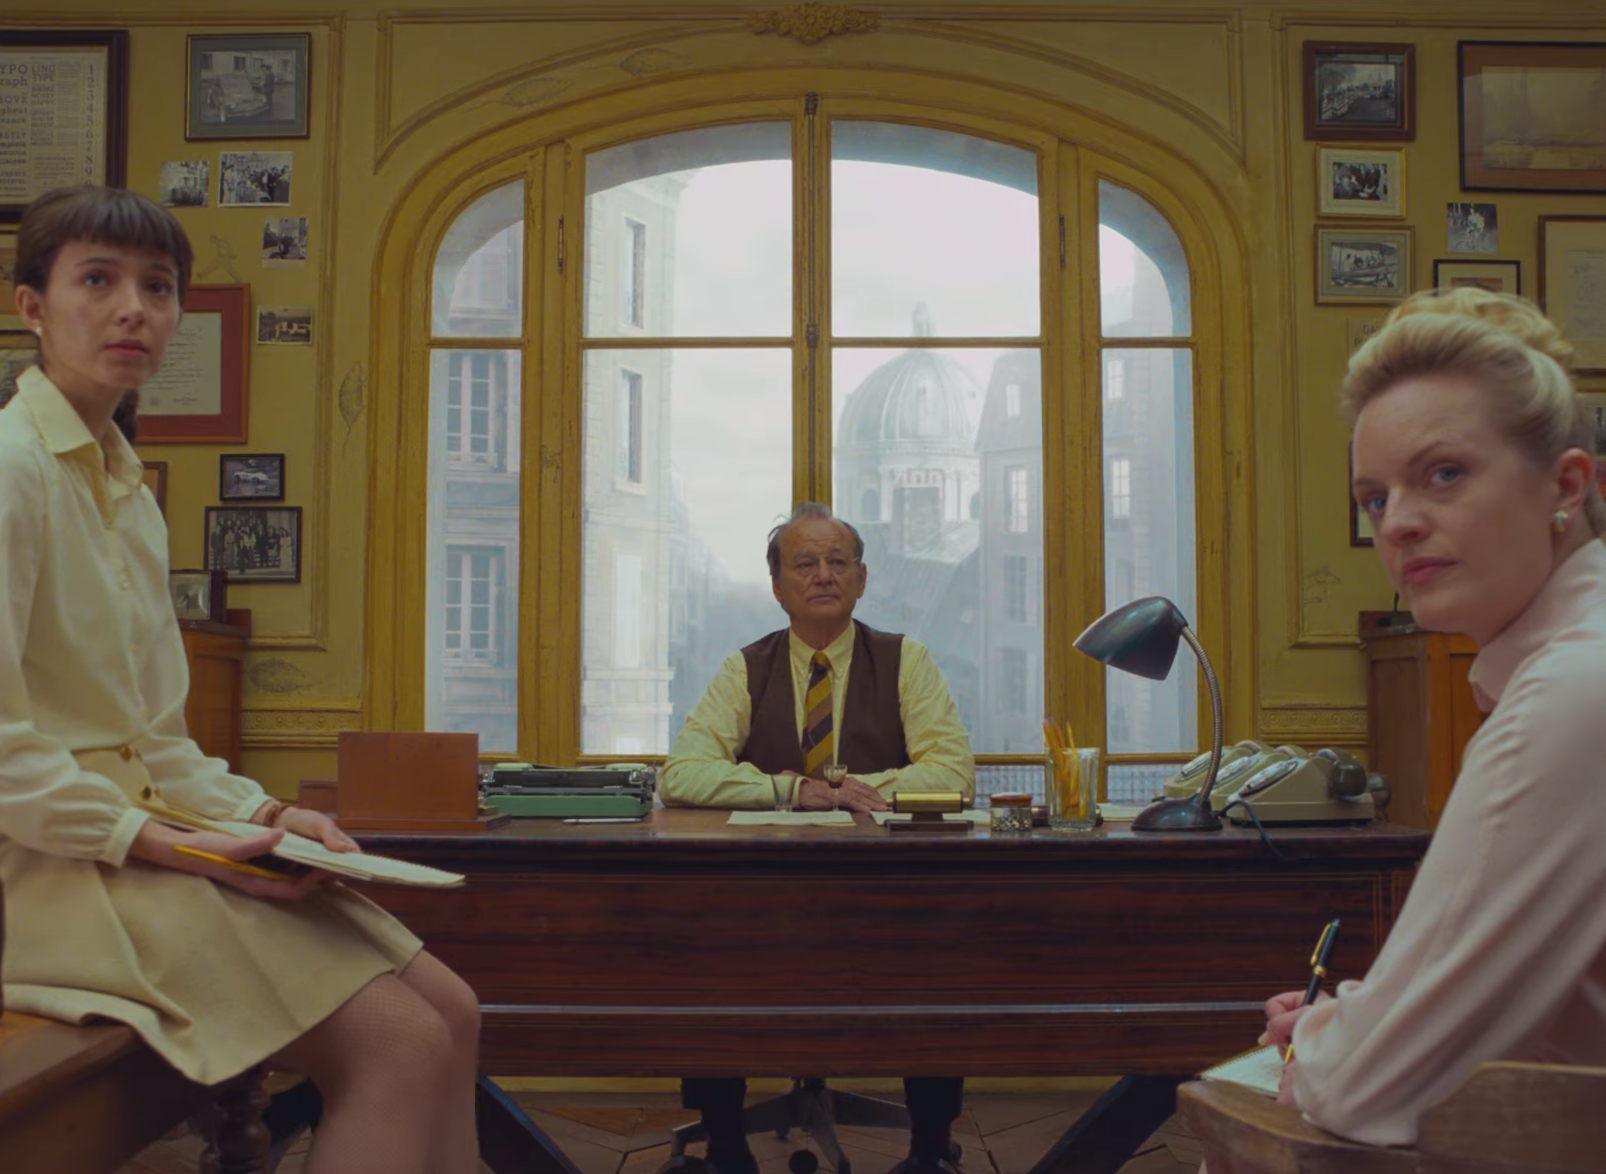 Bill Murray, Timothée Chalamet, Saoirse Ronan and More Star in Wes Anderson's 'The French Dispatch' Trailer